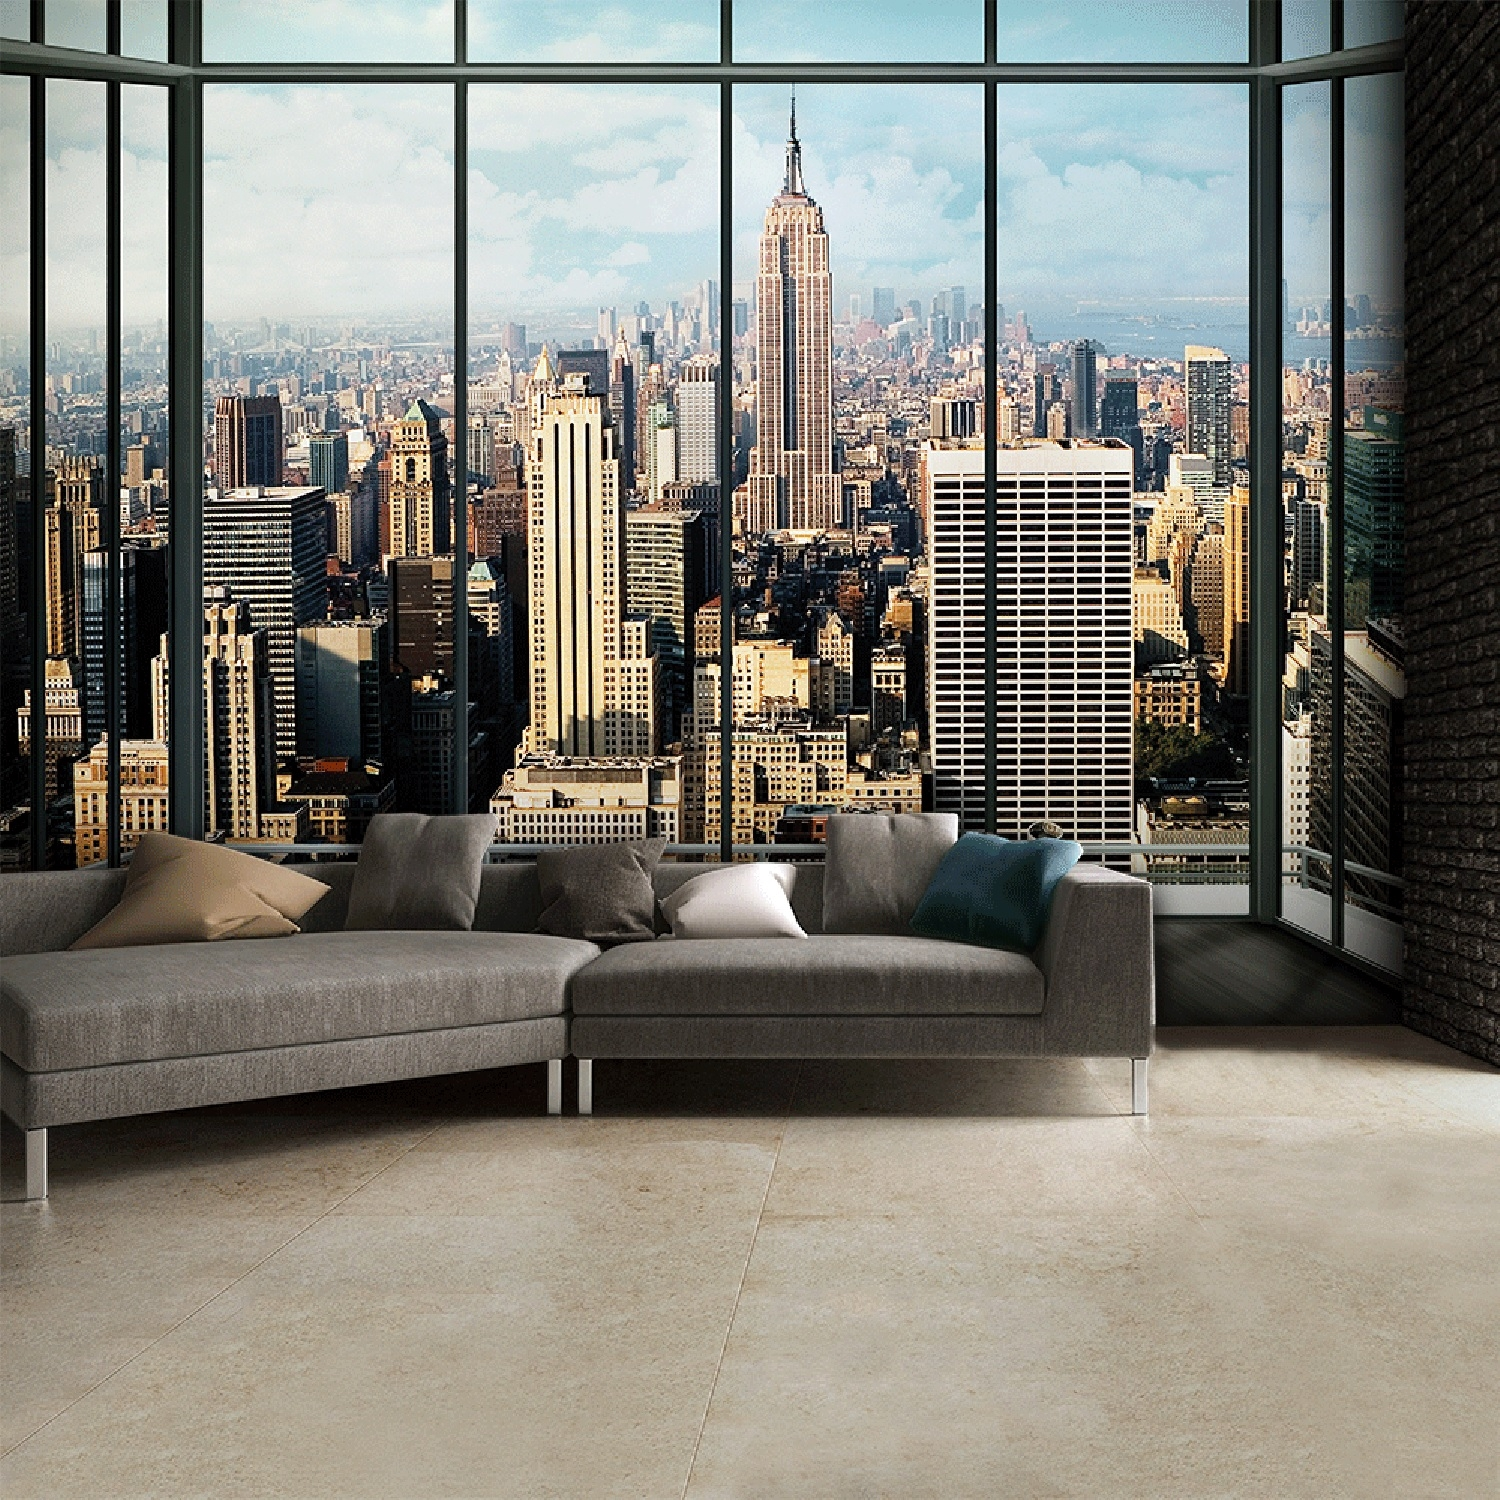 Image of Vintage New York Wall Mural